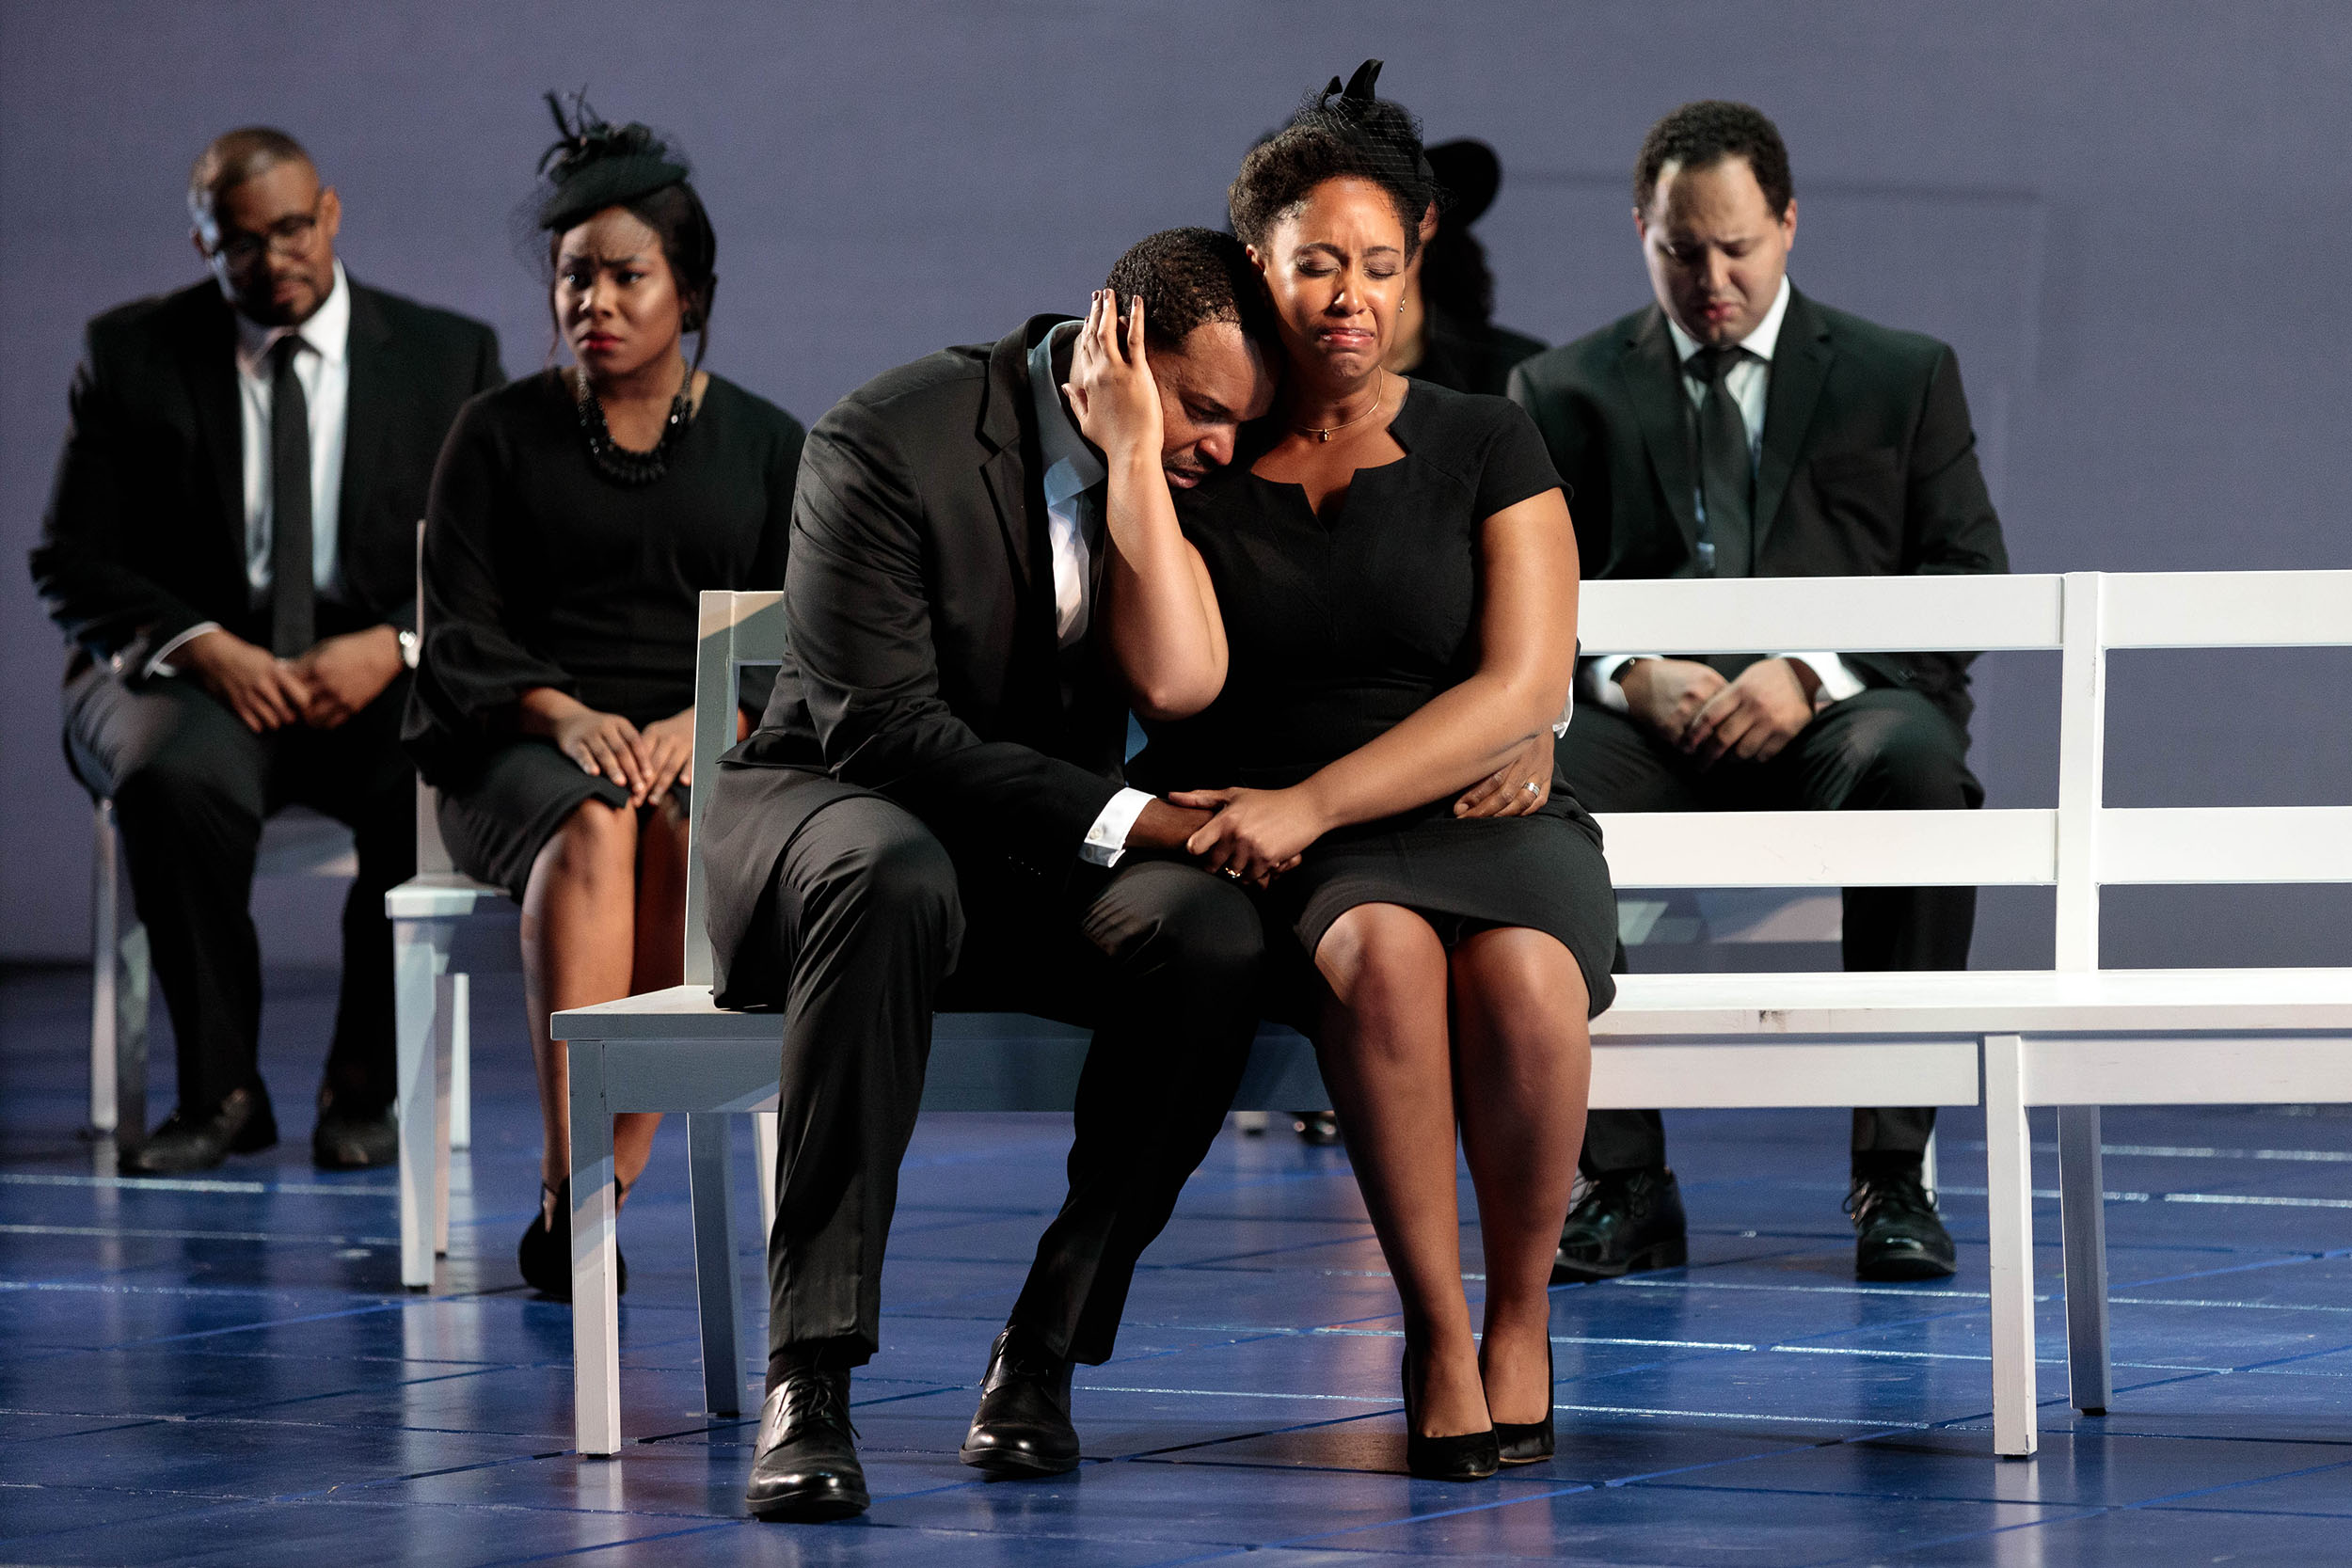 """(Front) Kenneth Kellogg as The Father, Briana Hunter as The Mother and members of the ensemble in The Glimmerglass Festival's 2019 world premiere of Jeanine Tesori and Tazewell Thompson's """"Blue."""""""